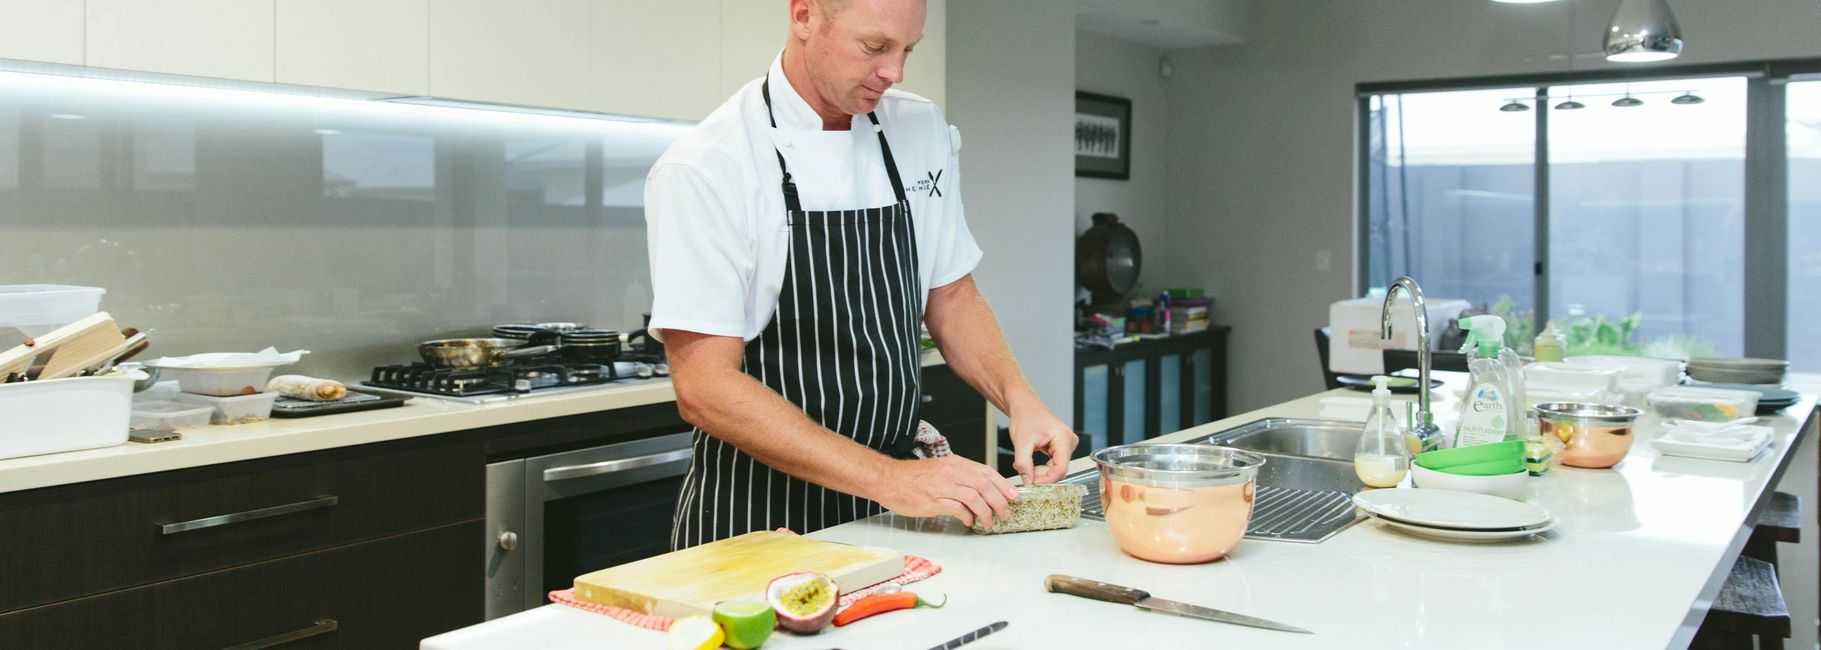 Private Chef Hire Perth, Personal Chef Hire, Hire a chef for a party, private dinner party catering.